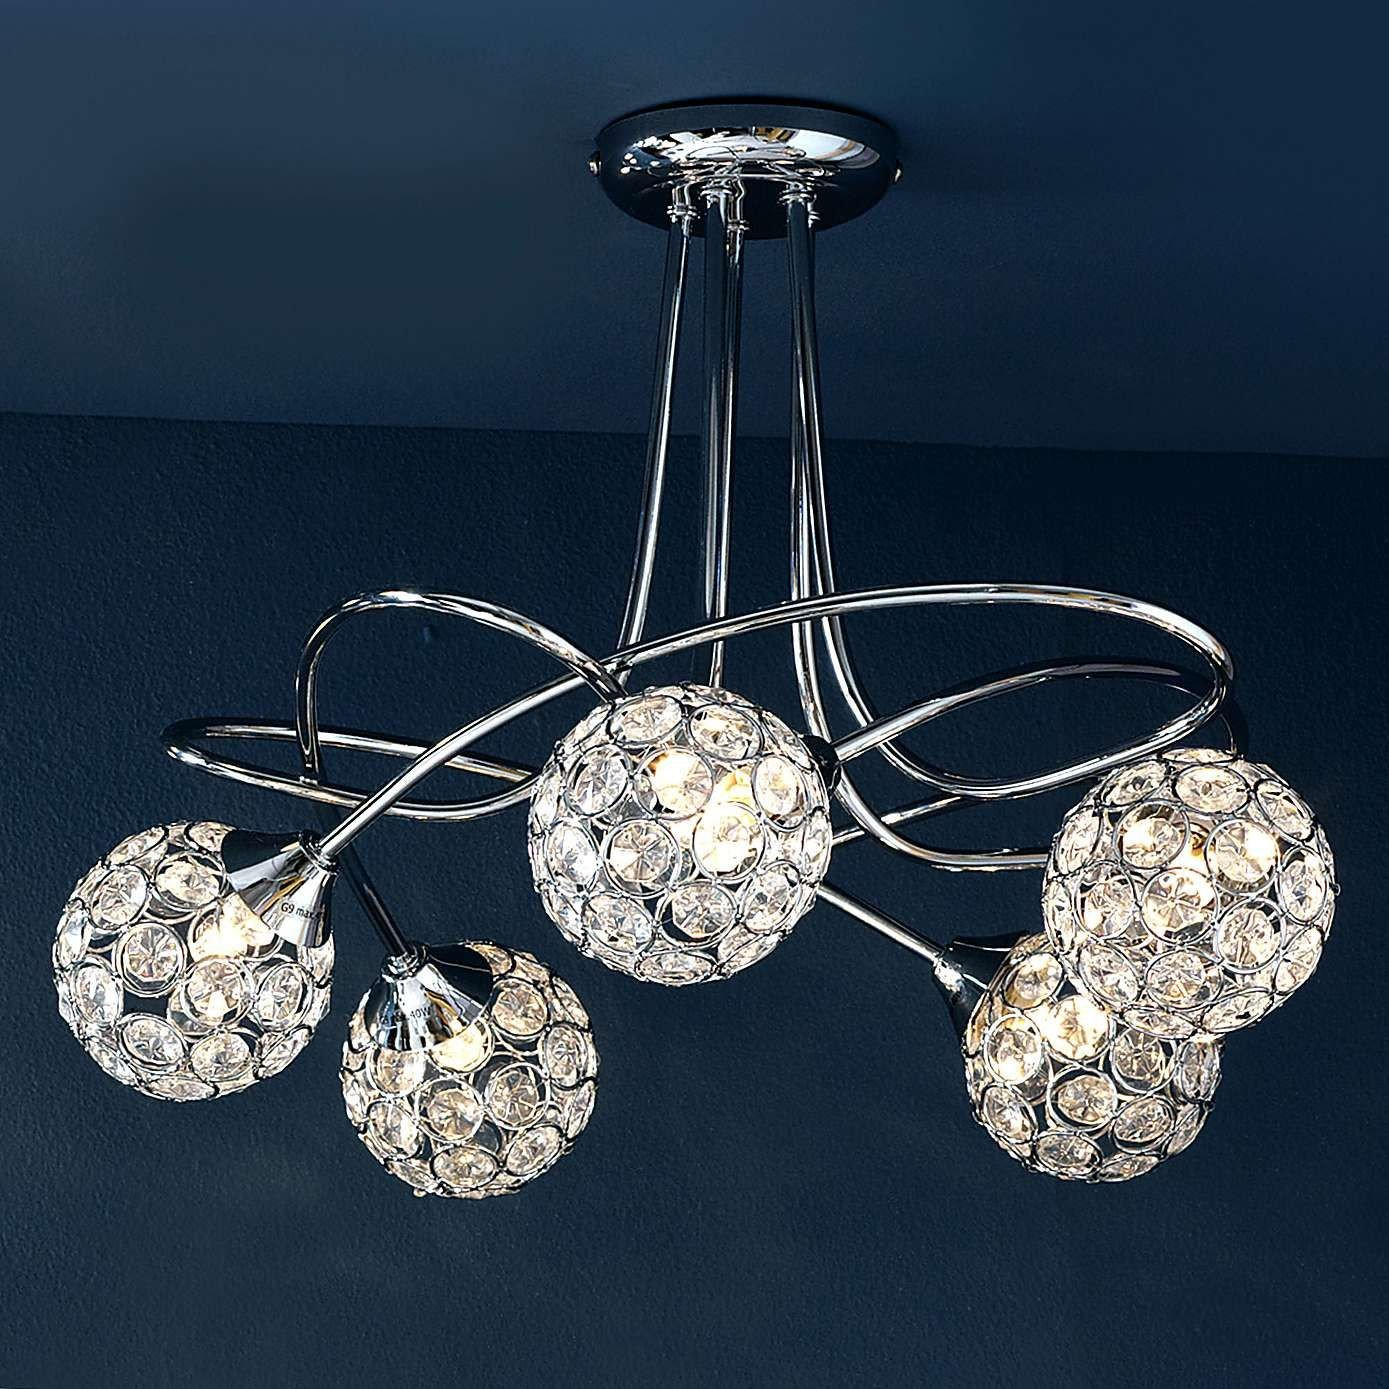 Chandelier Light for Bedroom Beautiful Sphere 5 Light Chrome Ceiling Fitting